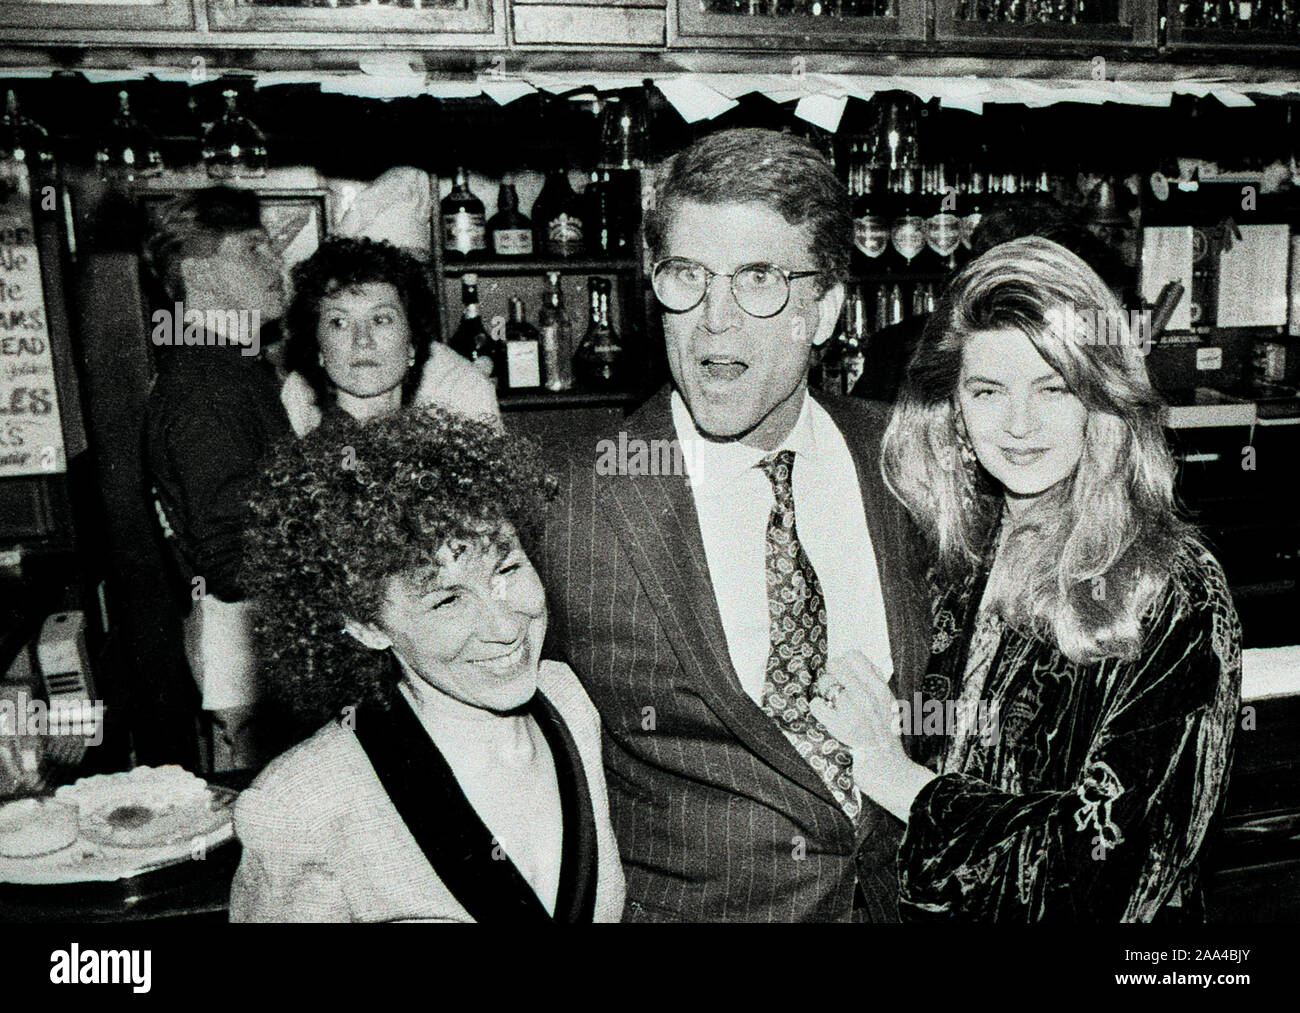 """Actors Rhea Perlman (left),Ted Danson (center) and Kristie Alley (right) at the """"Cheers"""" celebration at the BullFInch Pub in Boston Ma USA 1990's photo by bill belknap Stock Photo"""